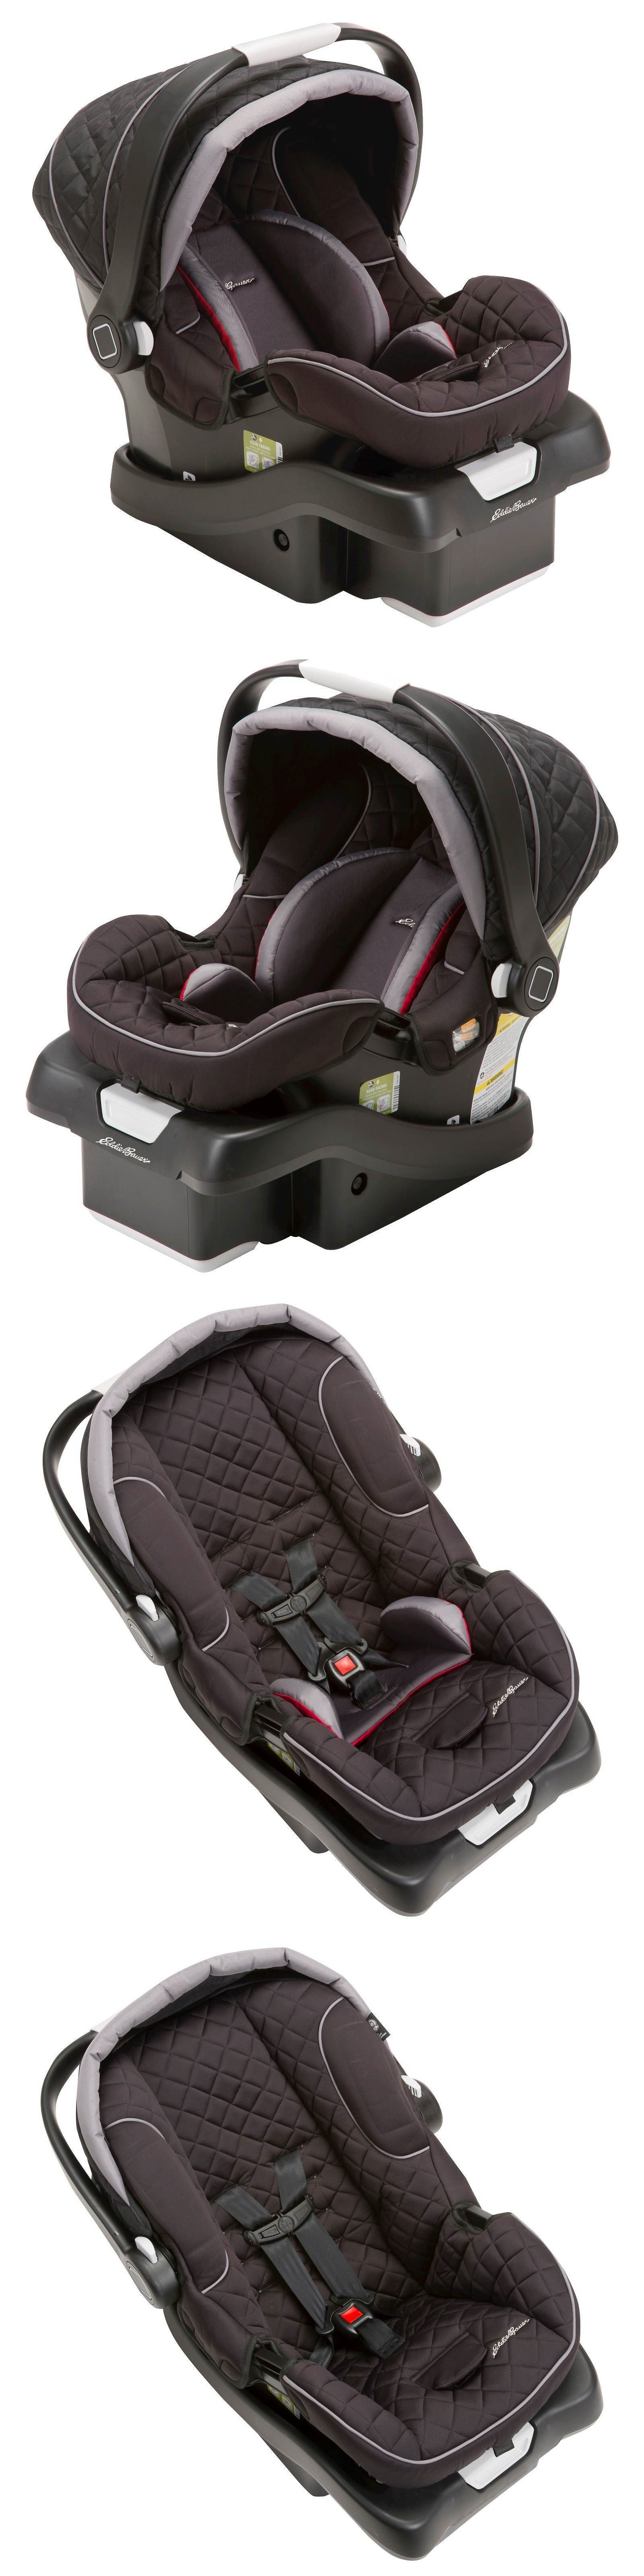 Other Car Safety Seats 2987 Eddie Bauer Surefit Infant Seat Comfortable With Side